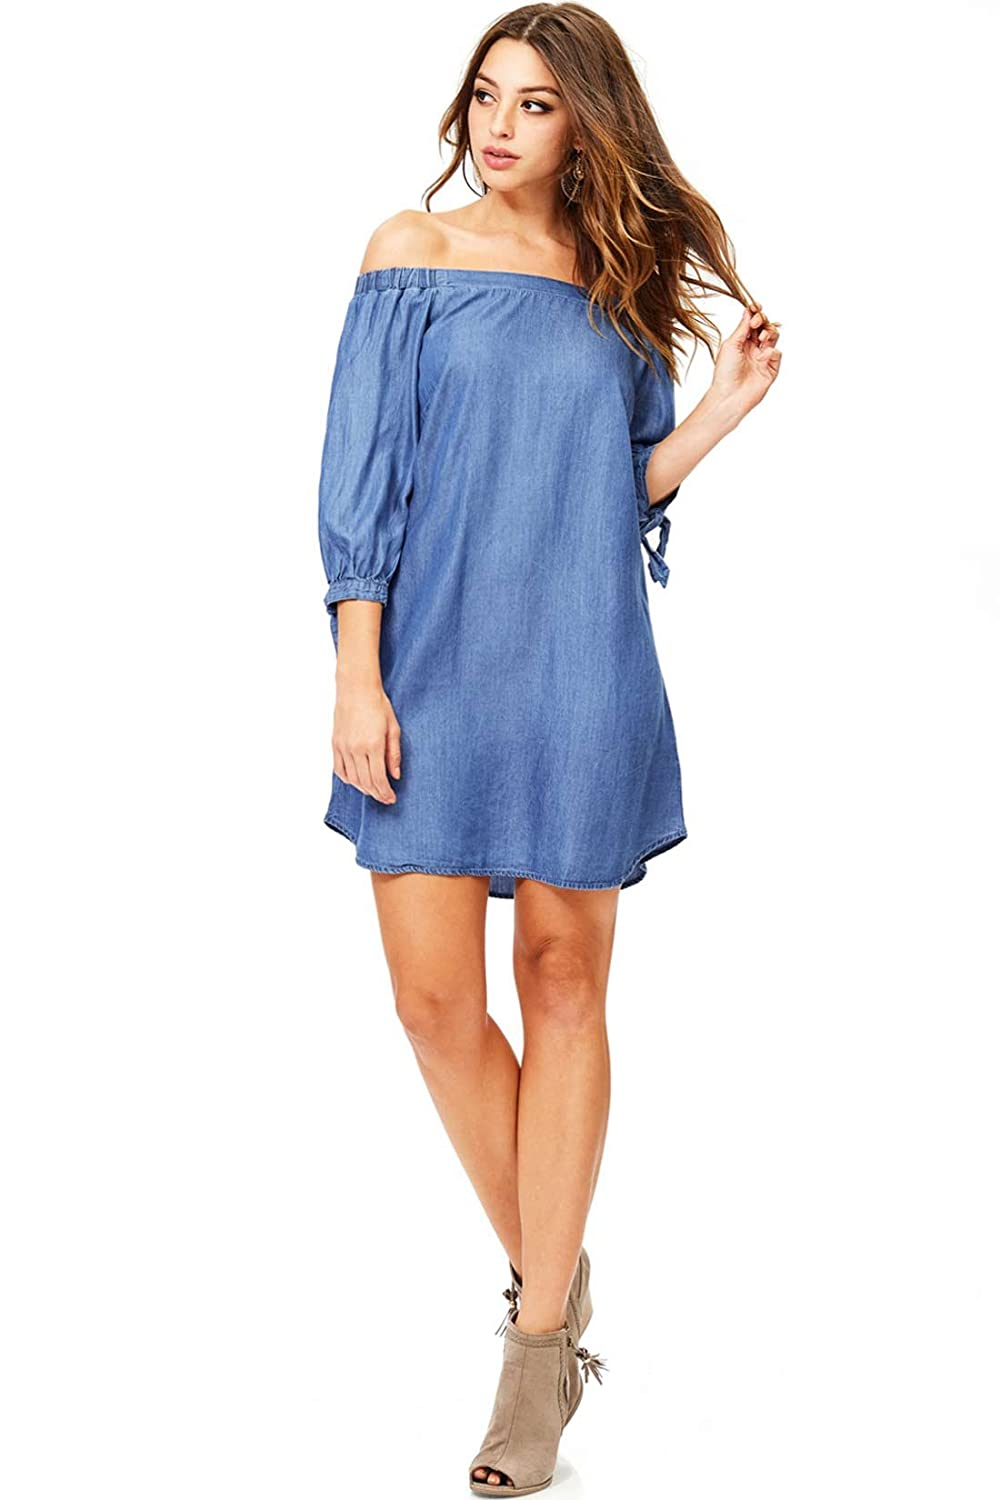 e7cf6c3fa5c3 Chambray off the shoulder dress with 3 4 sleeves. Light flowy chambray  fabric will keep you cool in spring and summer months. Hand Wash Cold 100%  Tencel